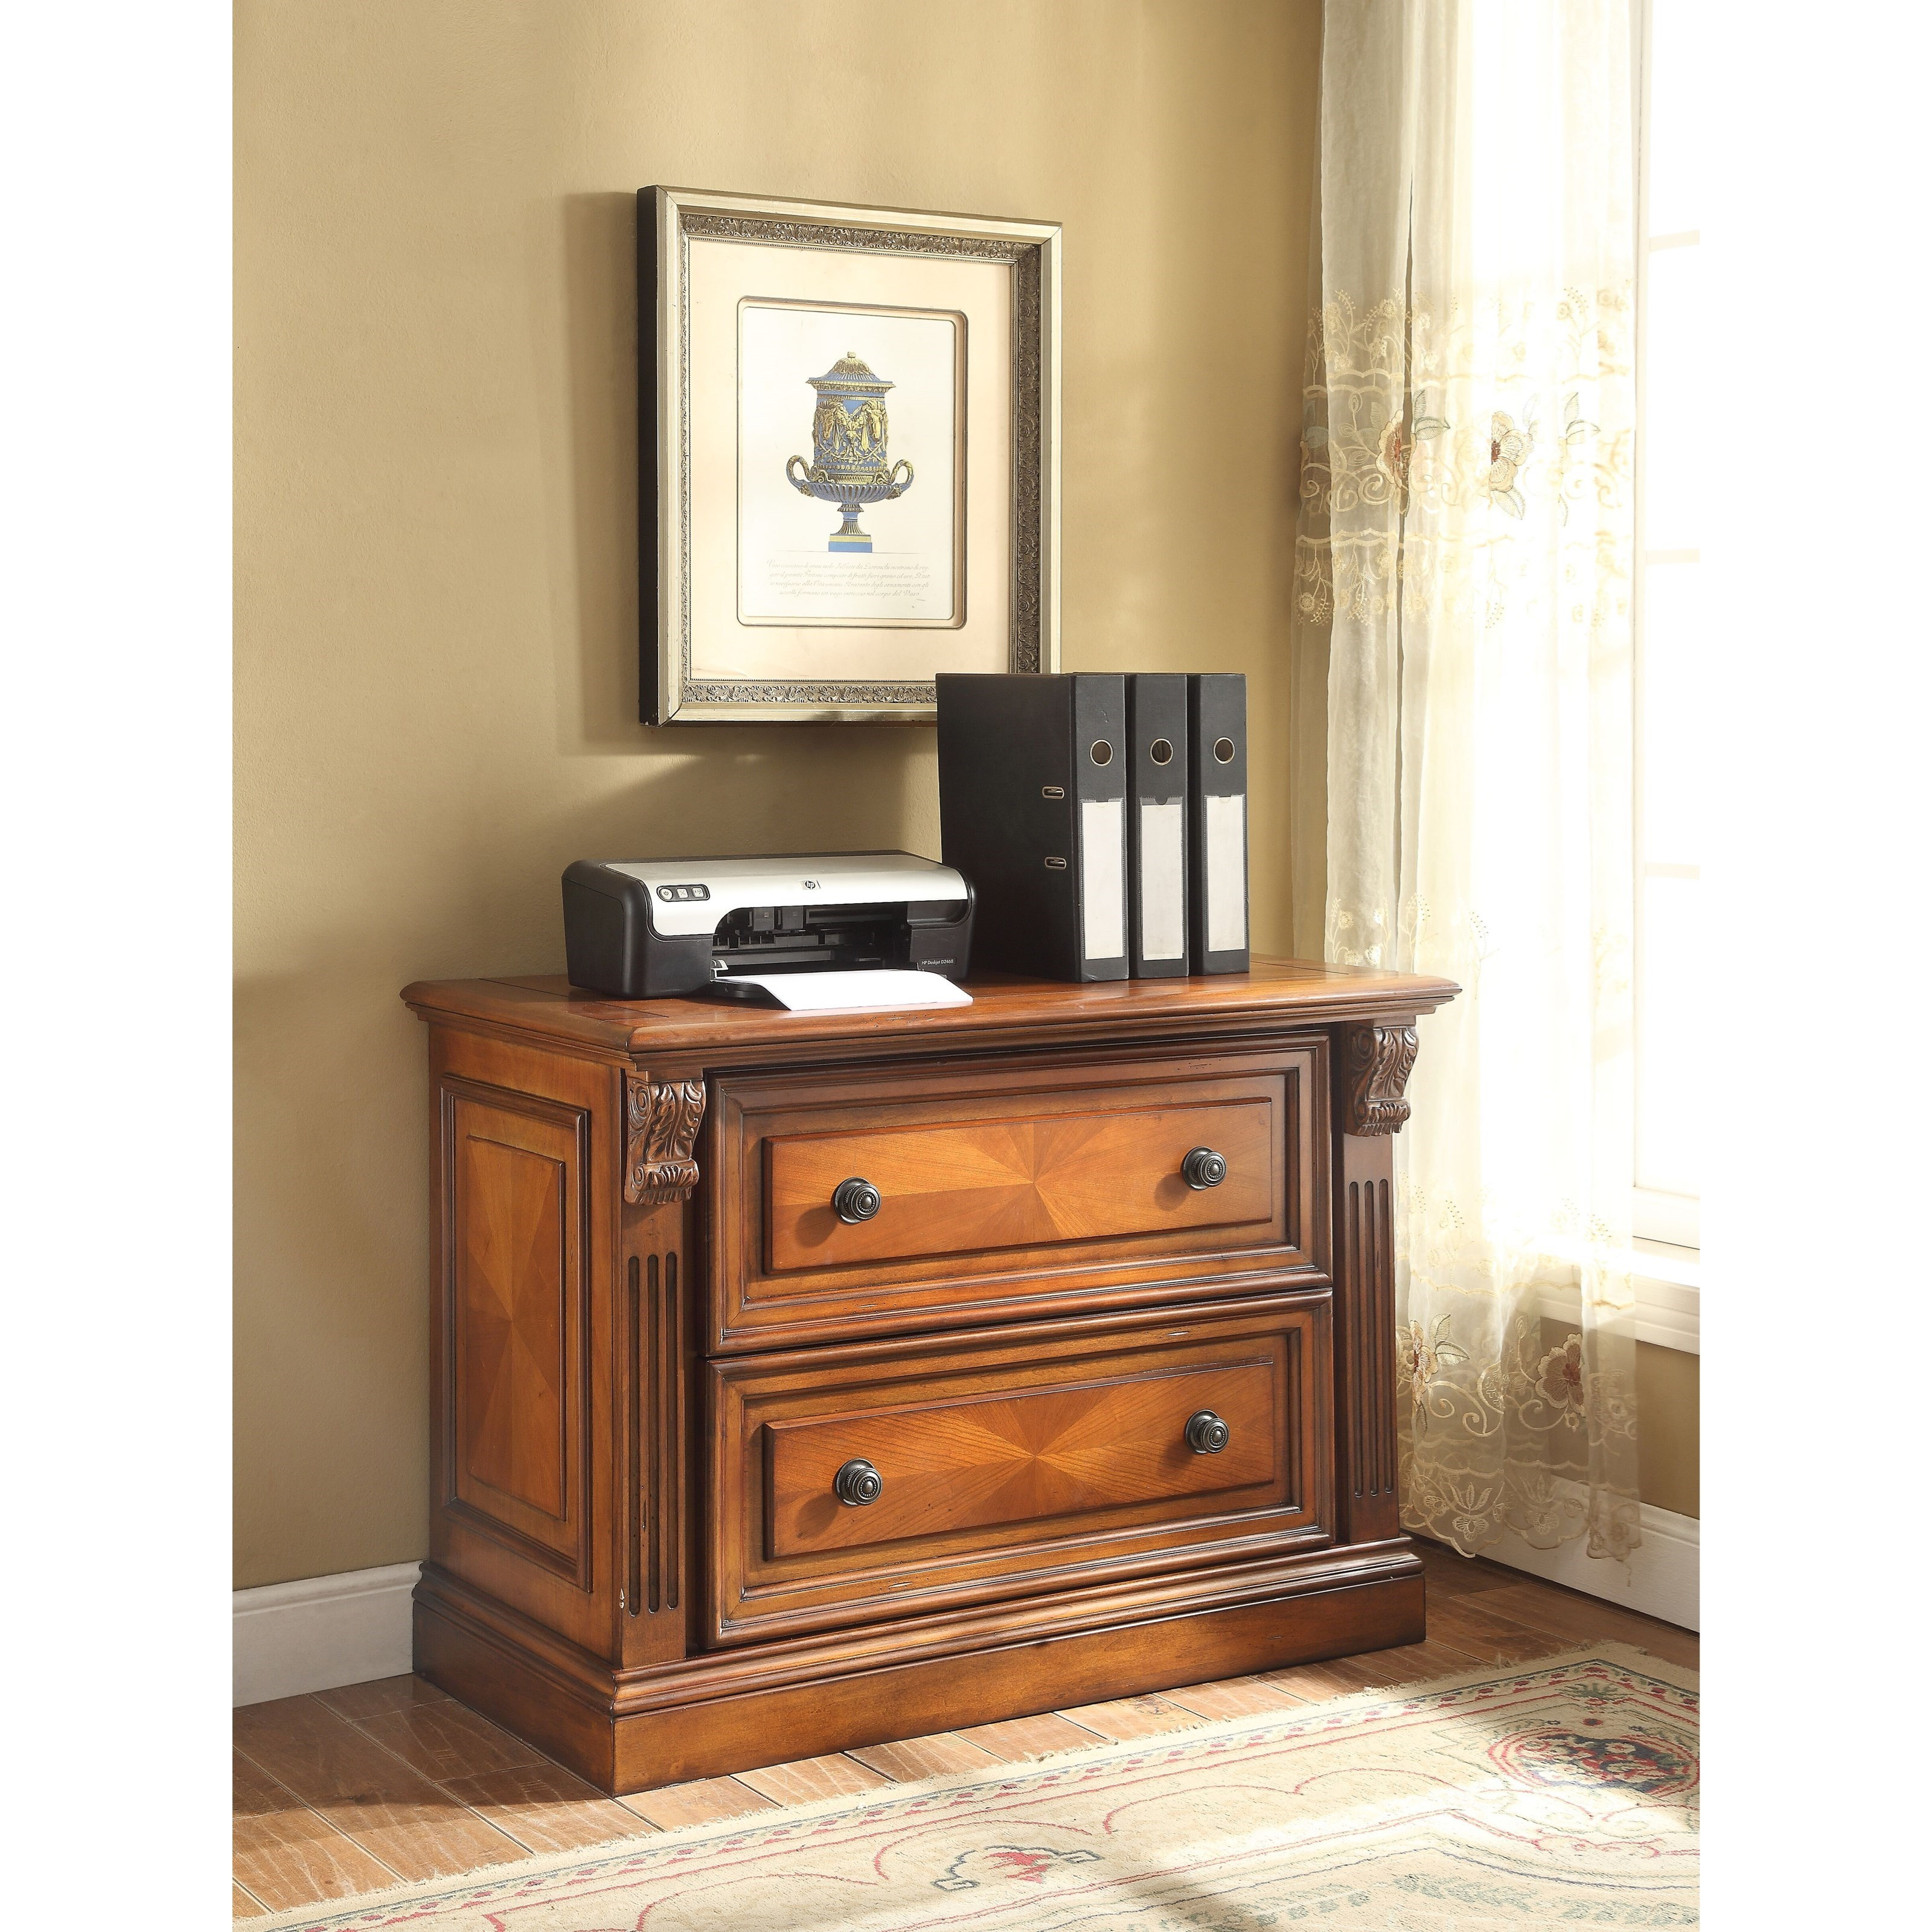 Huntington 2 Drawer Lateral File by Parker House at Westrich Furniture & Appliances